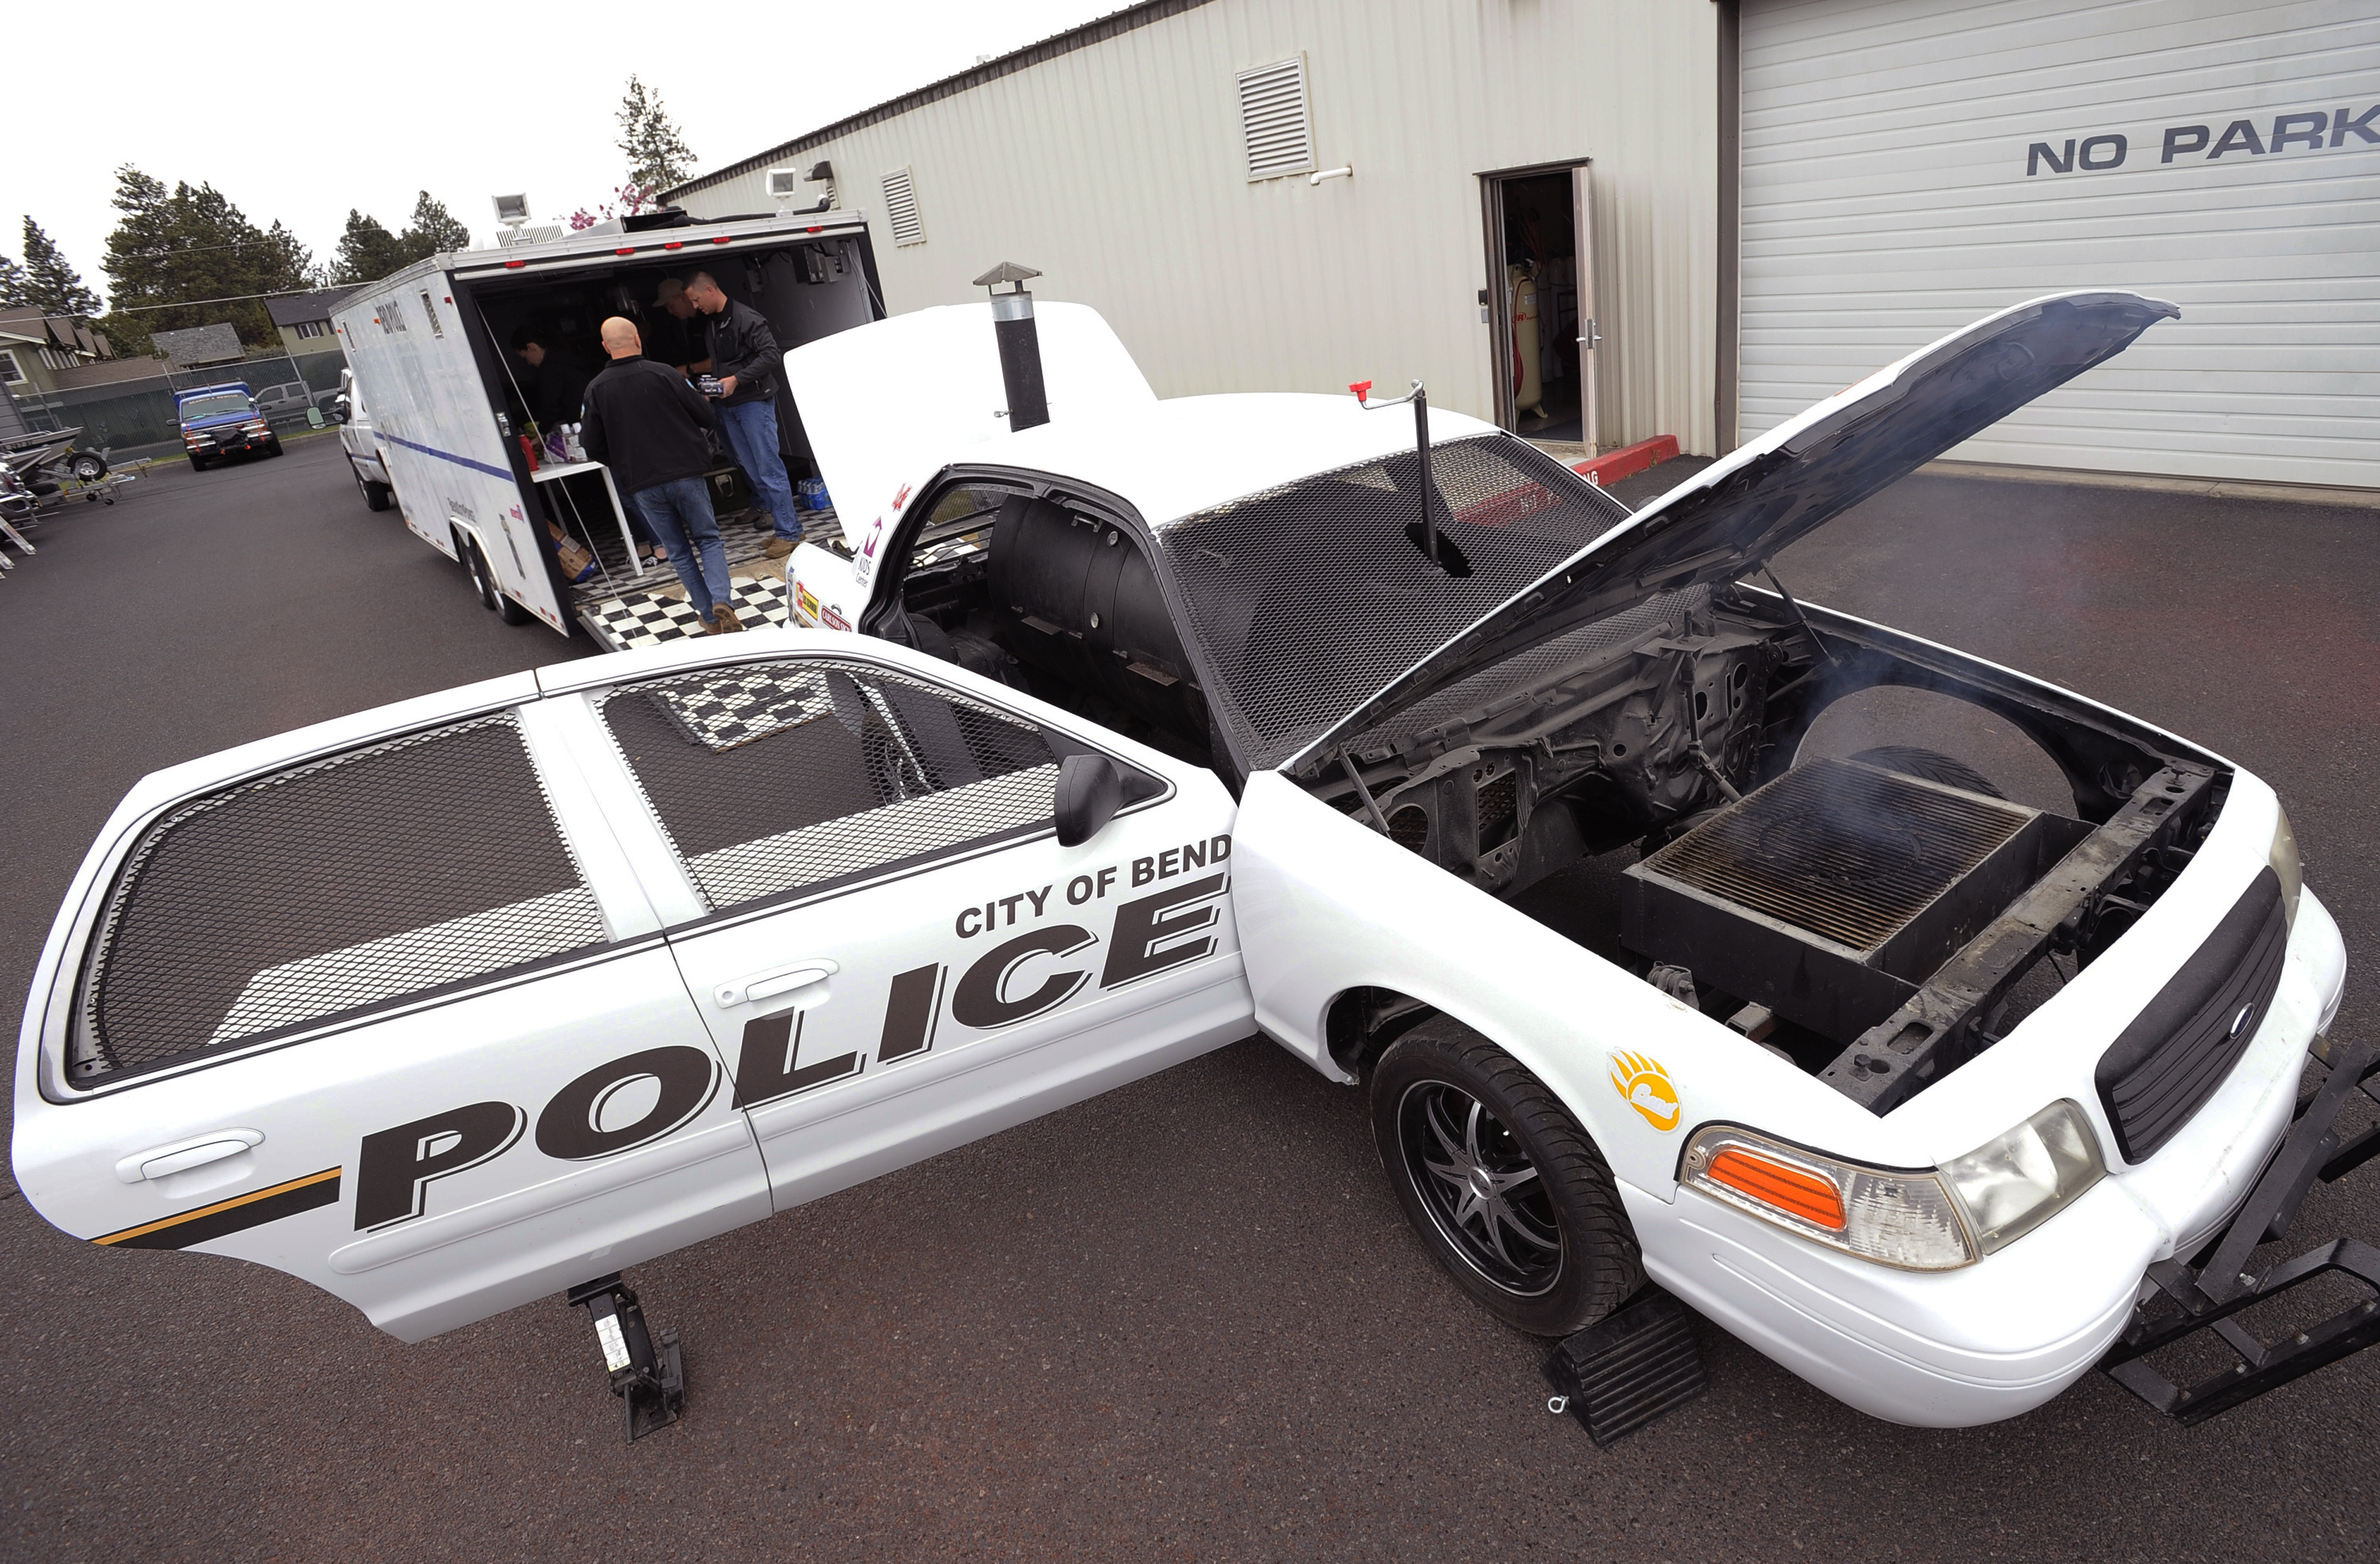 former police cruiser lives on as car b que